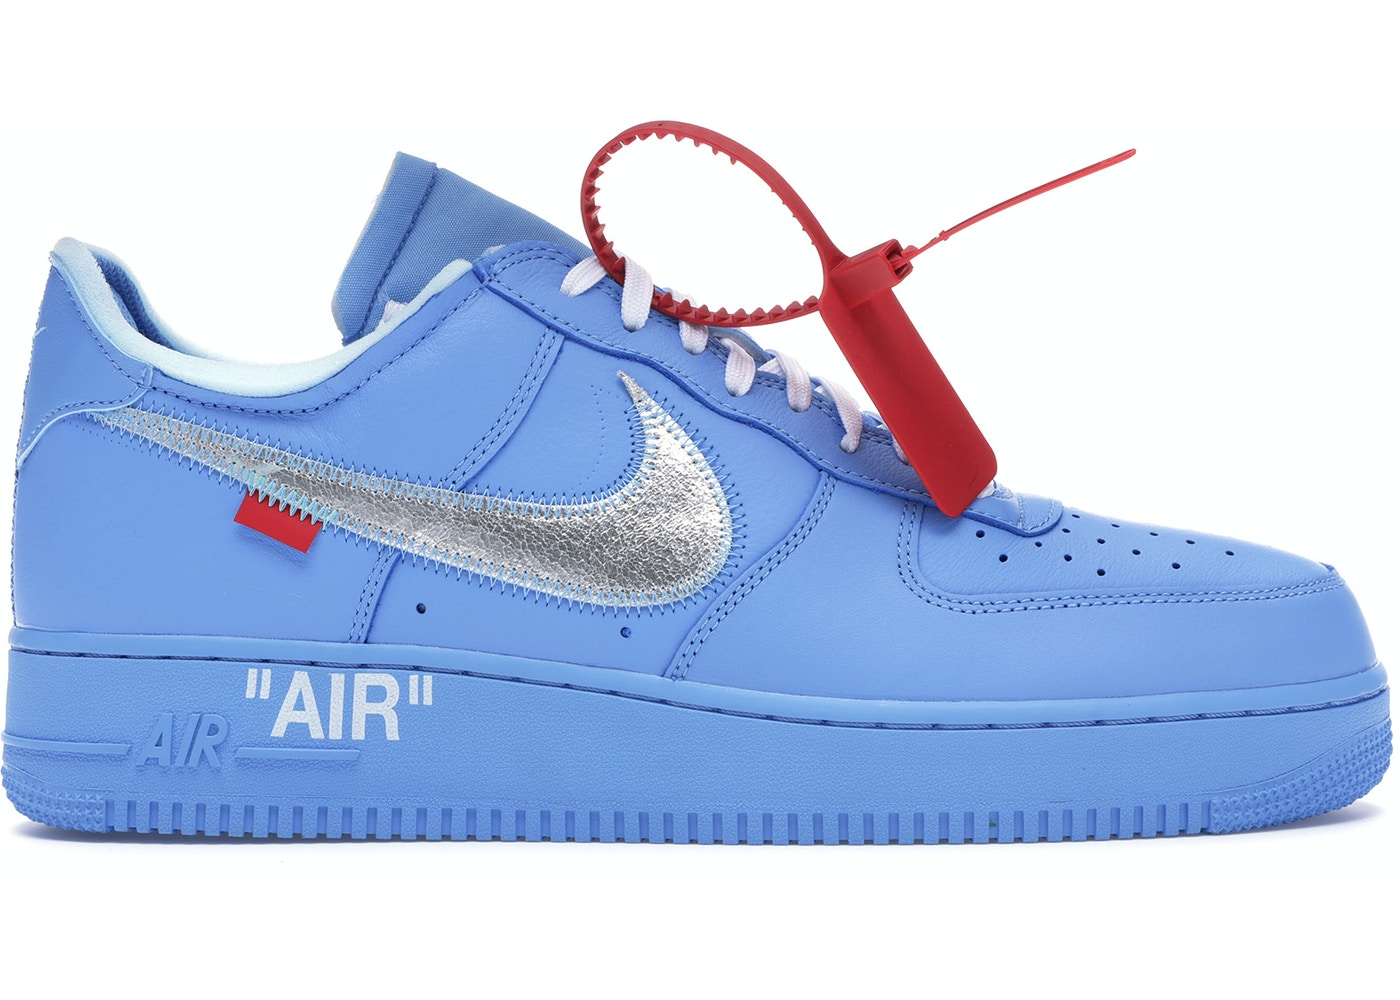 Off White Shoes Nike Air Force 1 Low Off-White MCA University Blue - CI1173-400